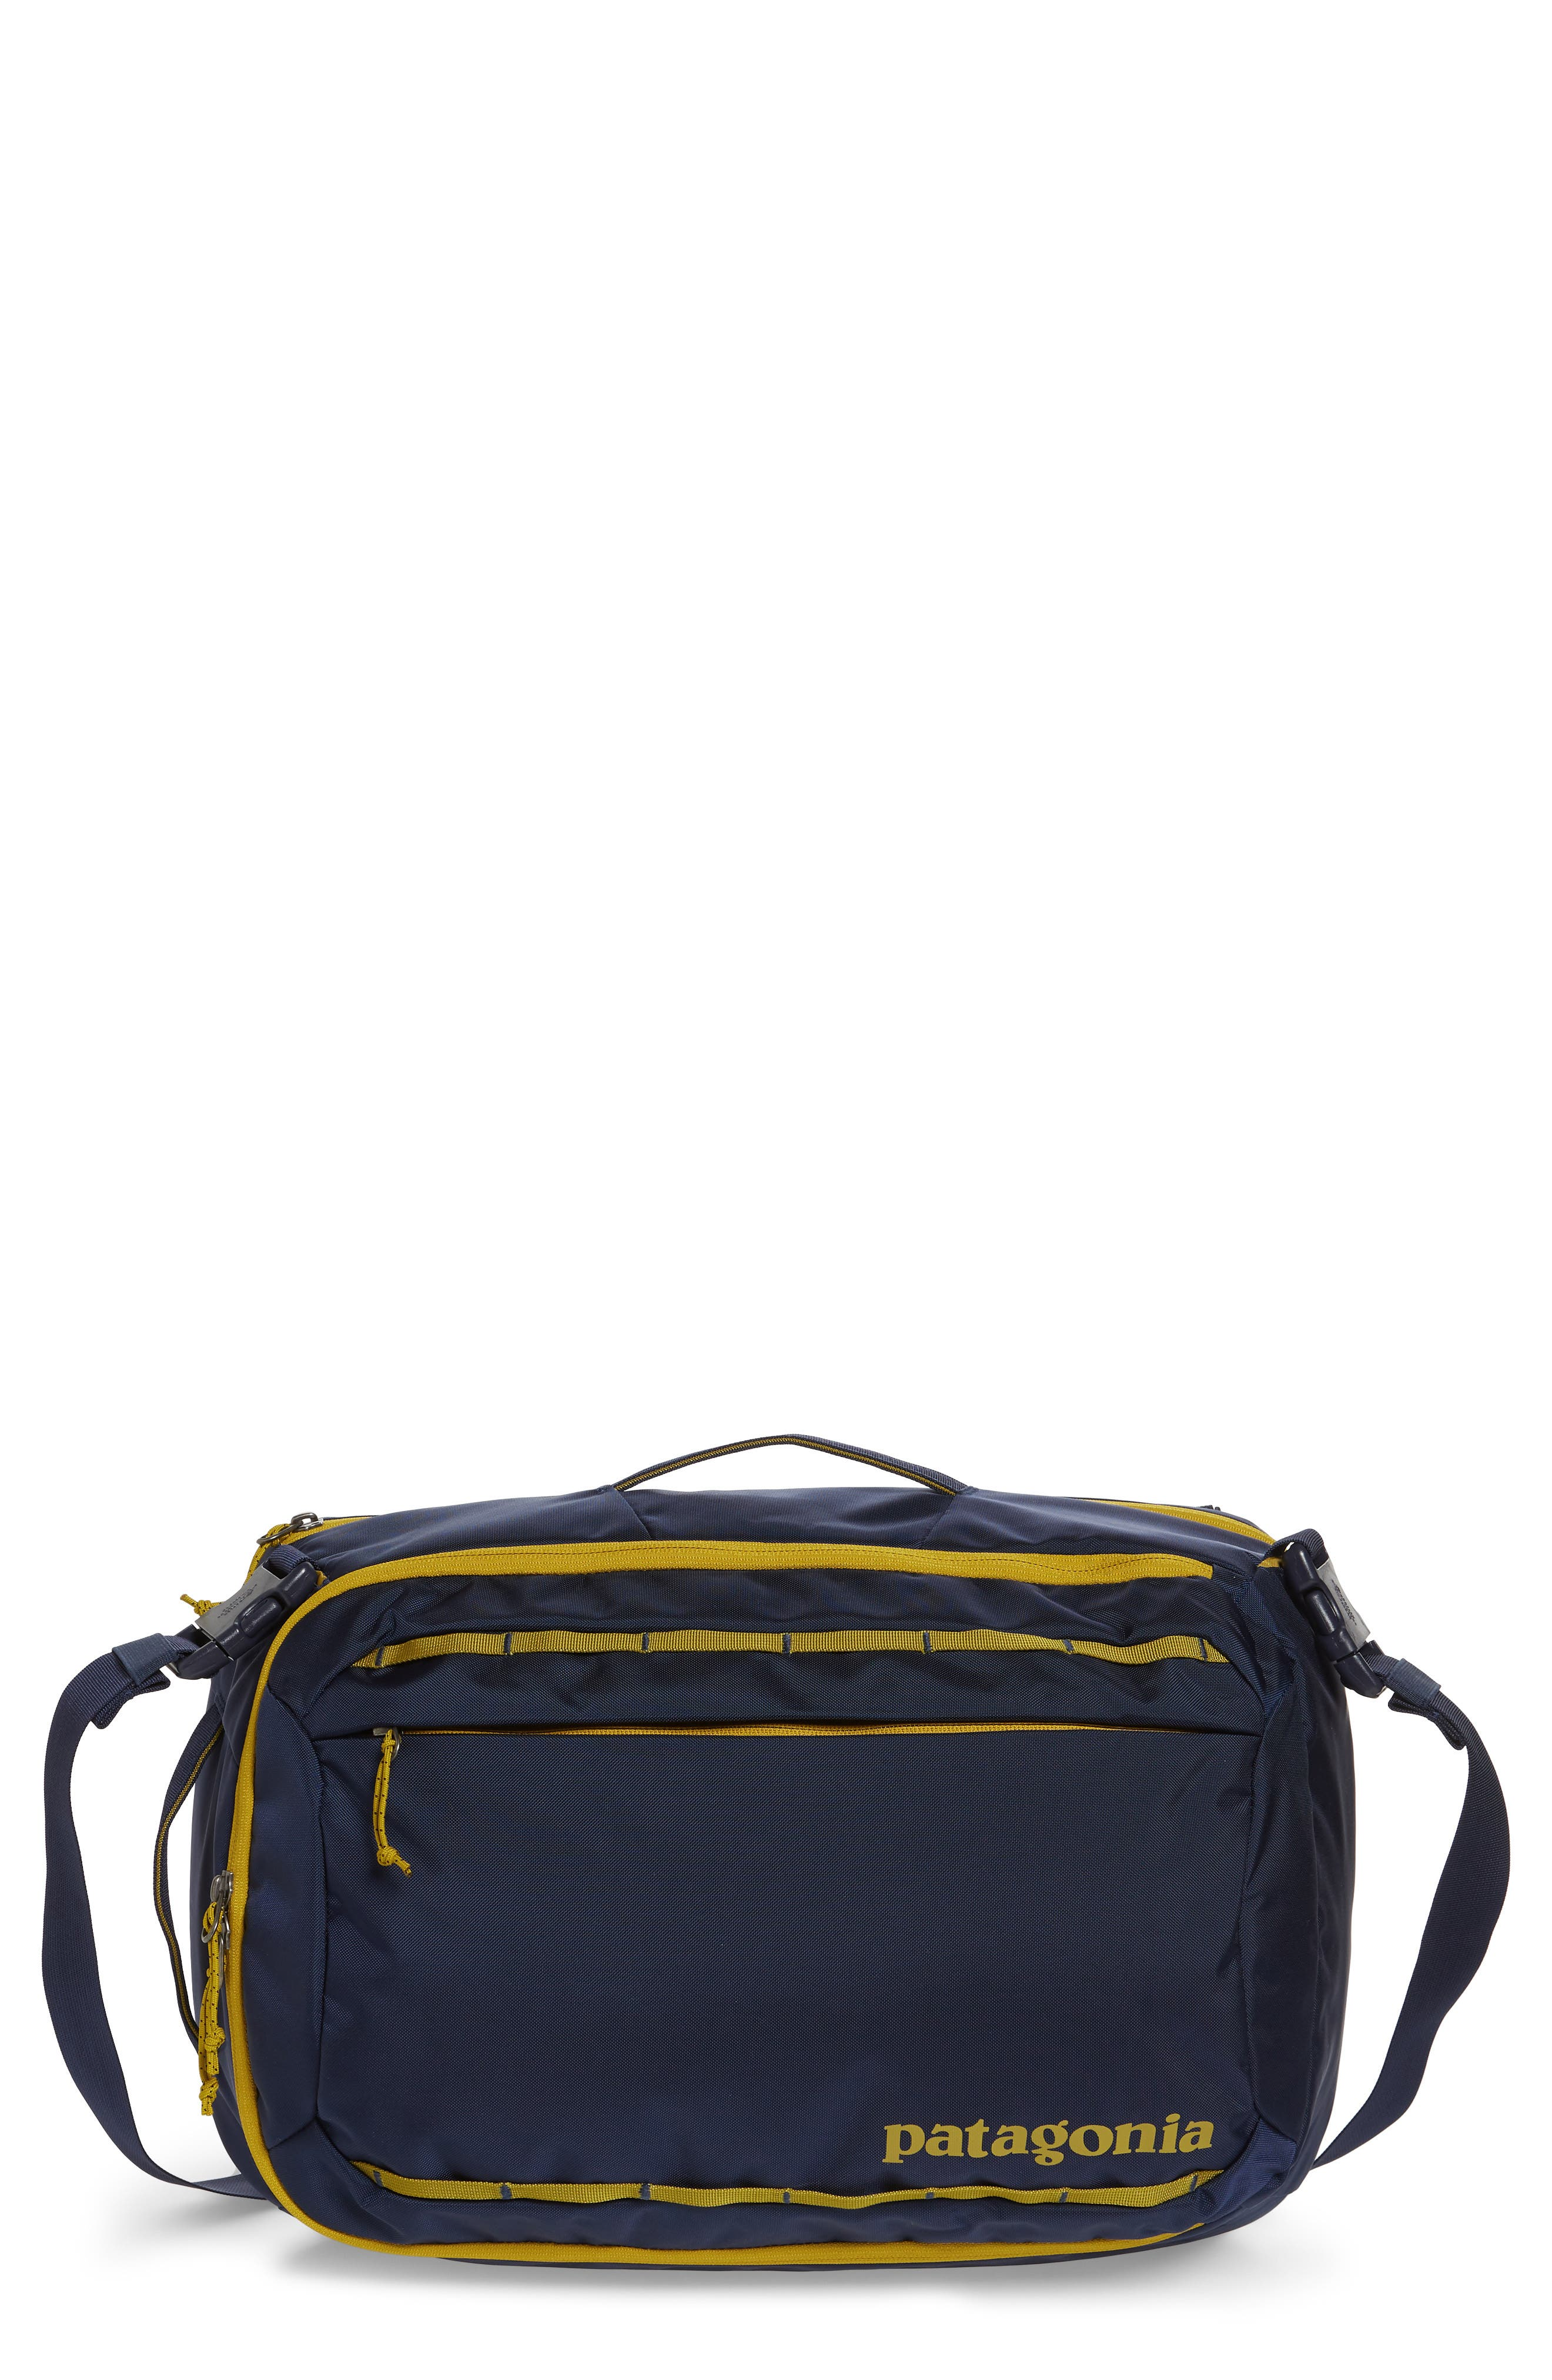 PATAGONIA Tres 25-Liter Convertible Backpack, Main, color, CLASSIC NAVY